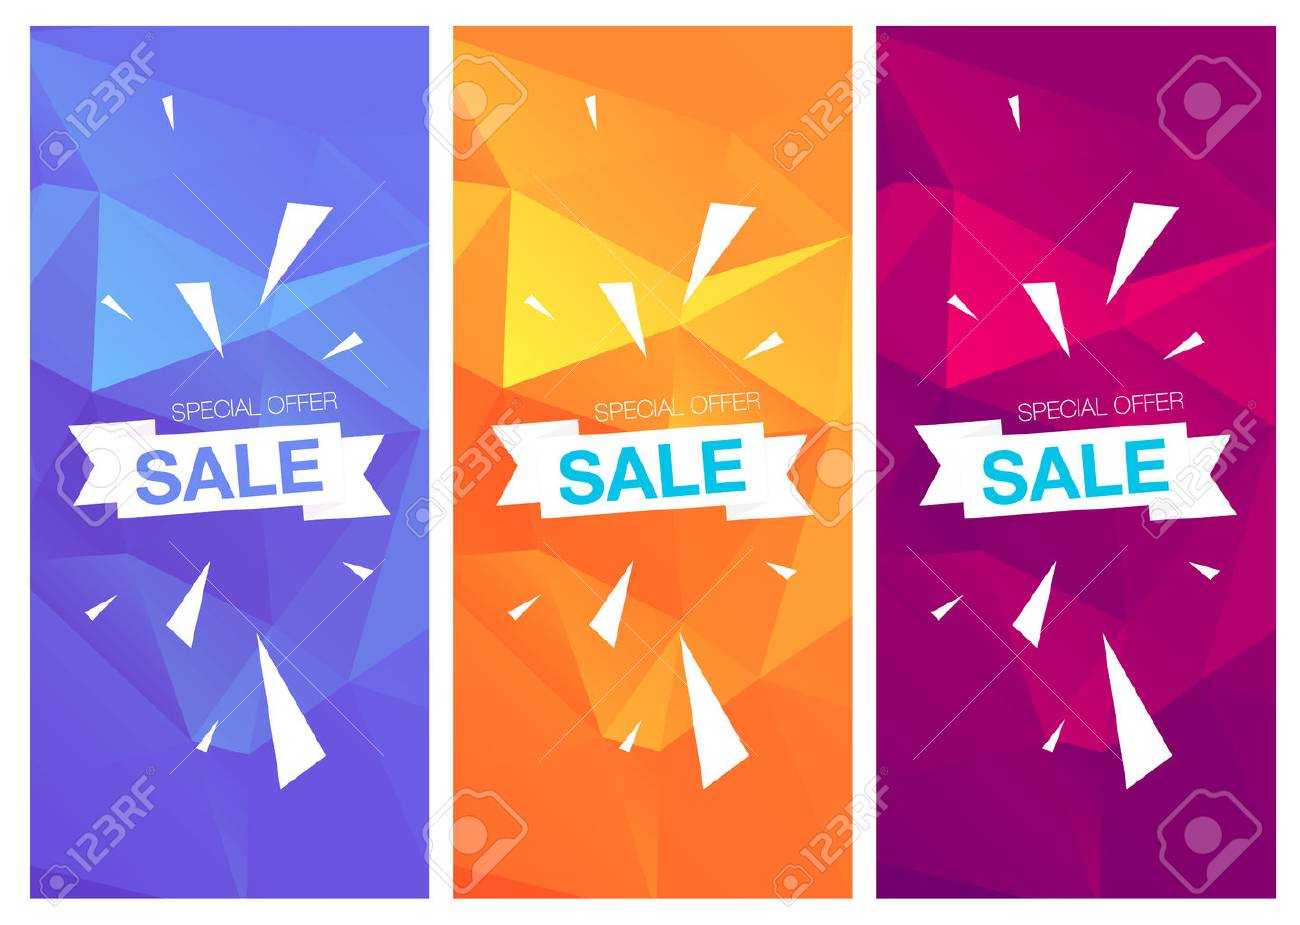 super special offer web banner templates on colored super special offer web banner templates on colored background stock vector 52950270